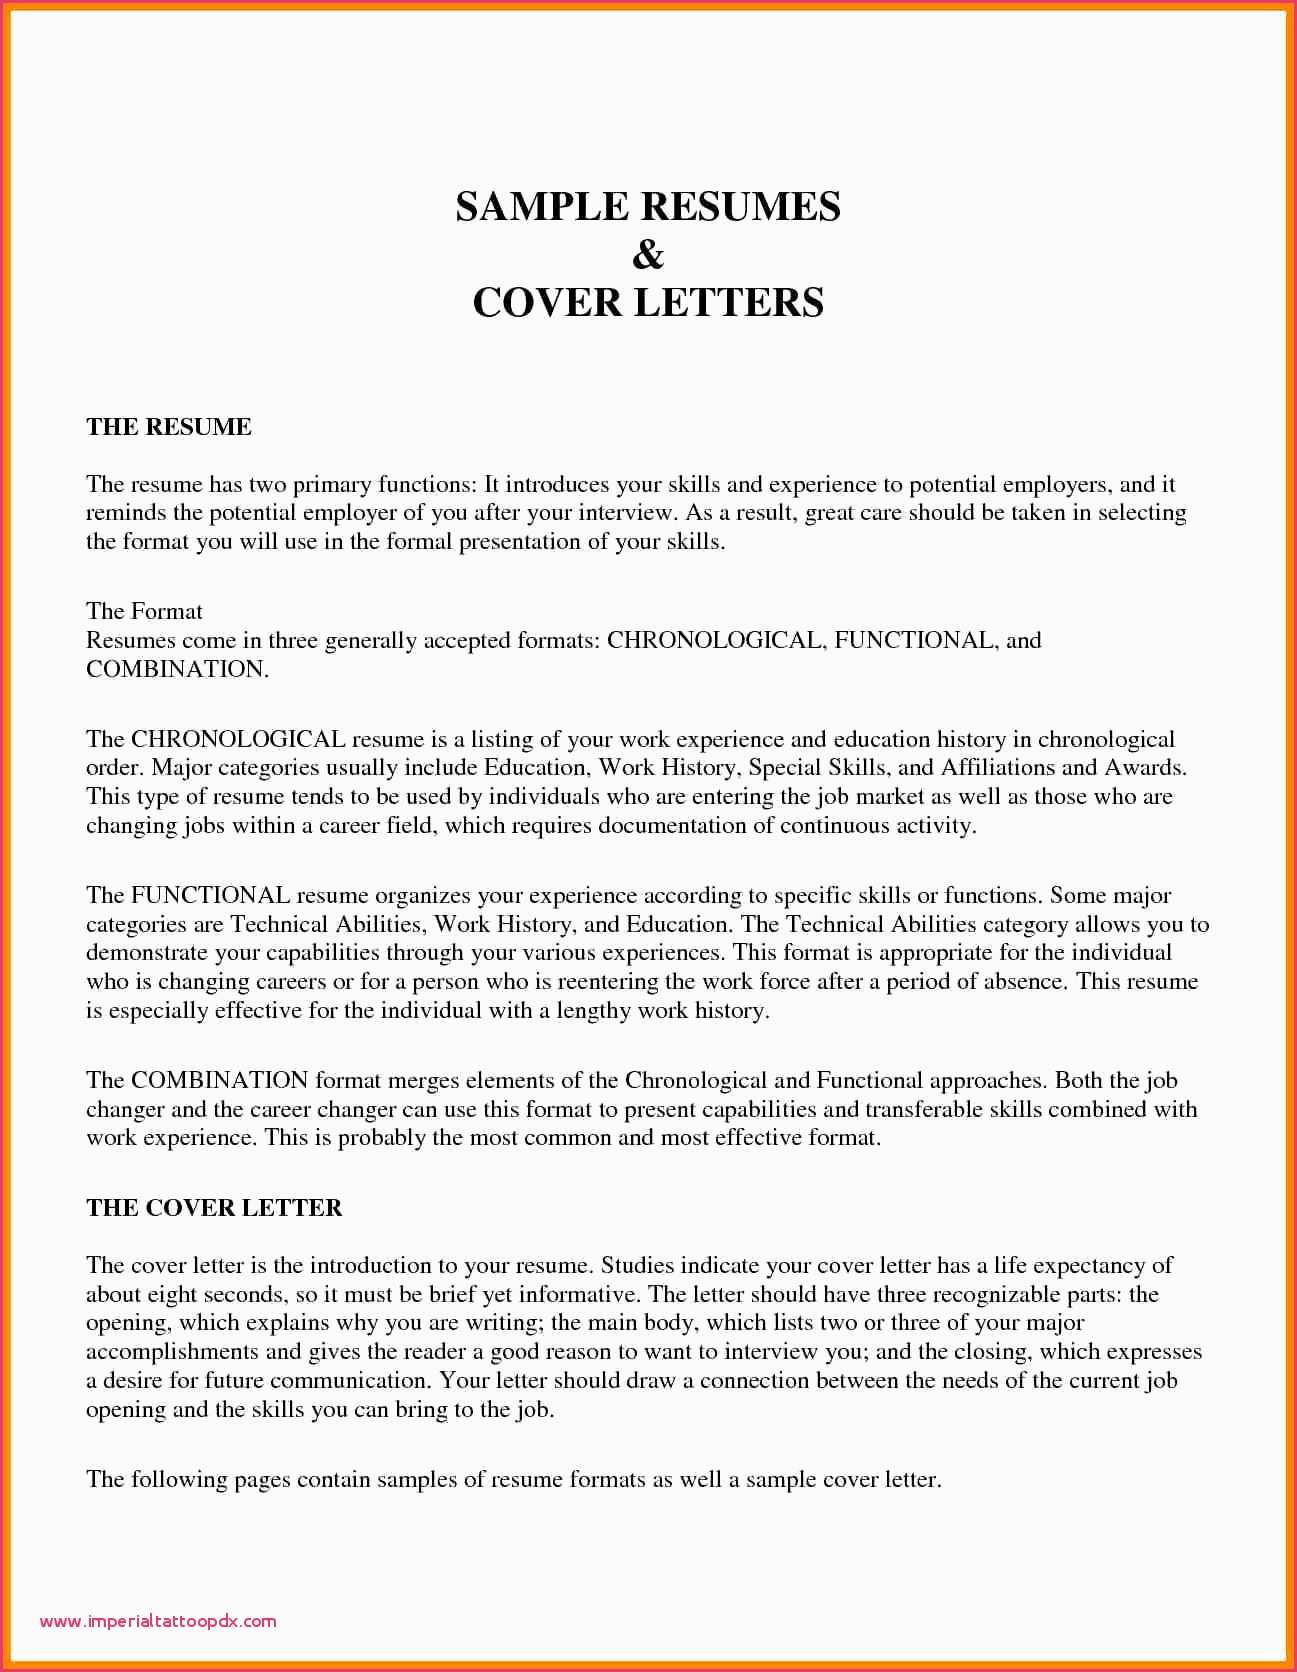 Resume for Marketing Job - Cna Resume Sample New Skills Lovely Bsw 0d Best format Template